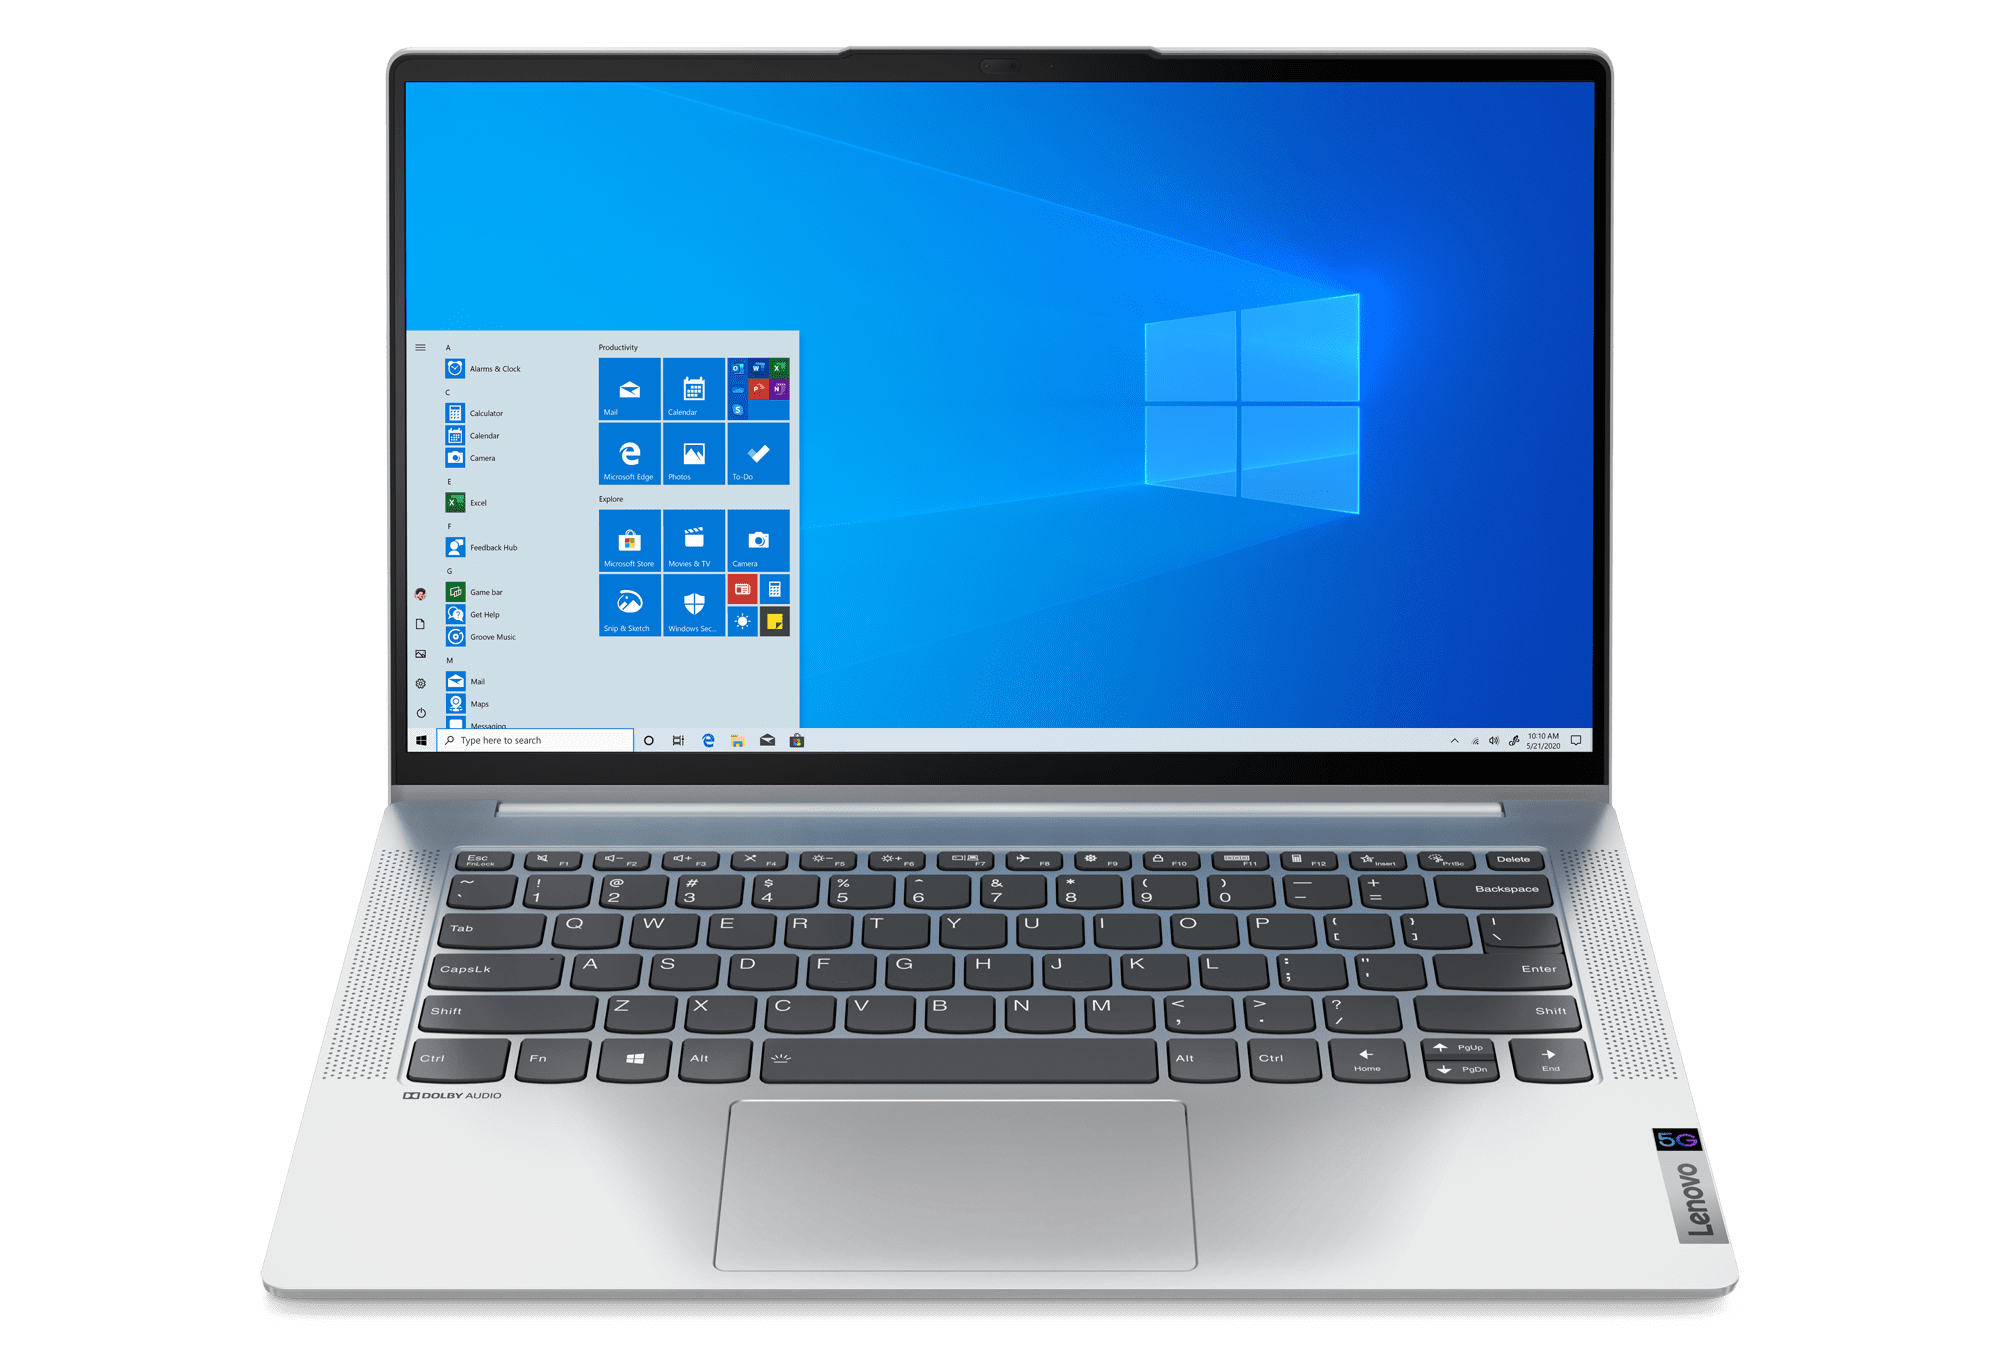 Lenovo IdeaPad 5G open front facing with Windows screen and keyboard visible